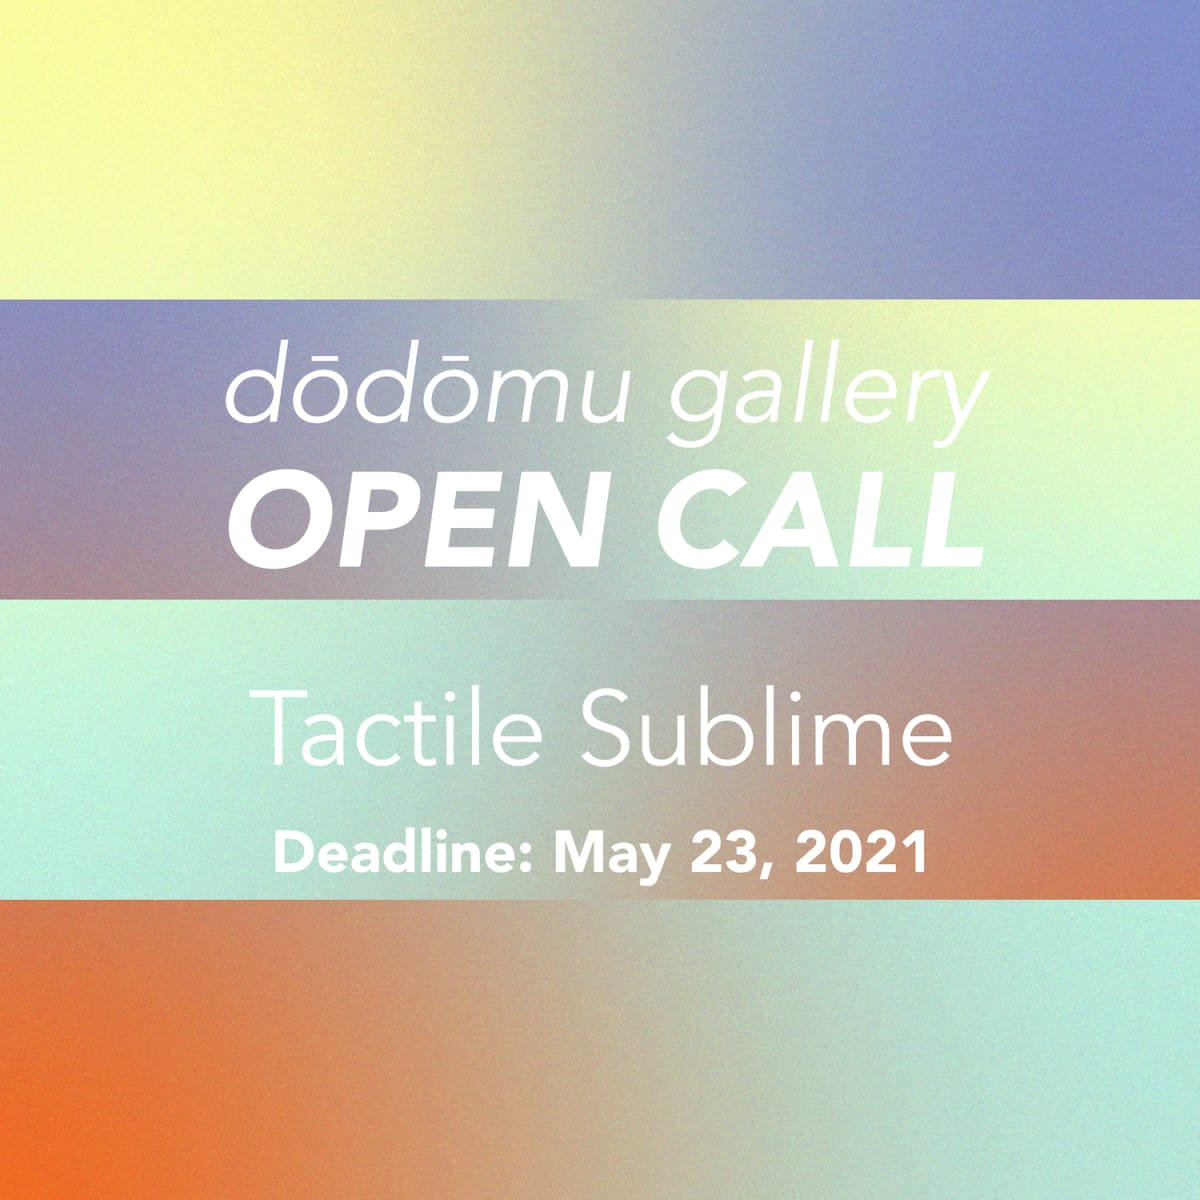 OPEN CALL: Tactile Sublime